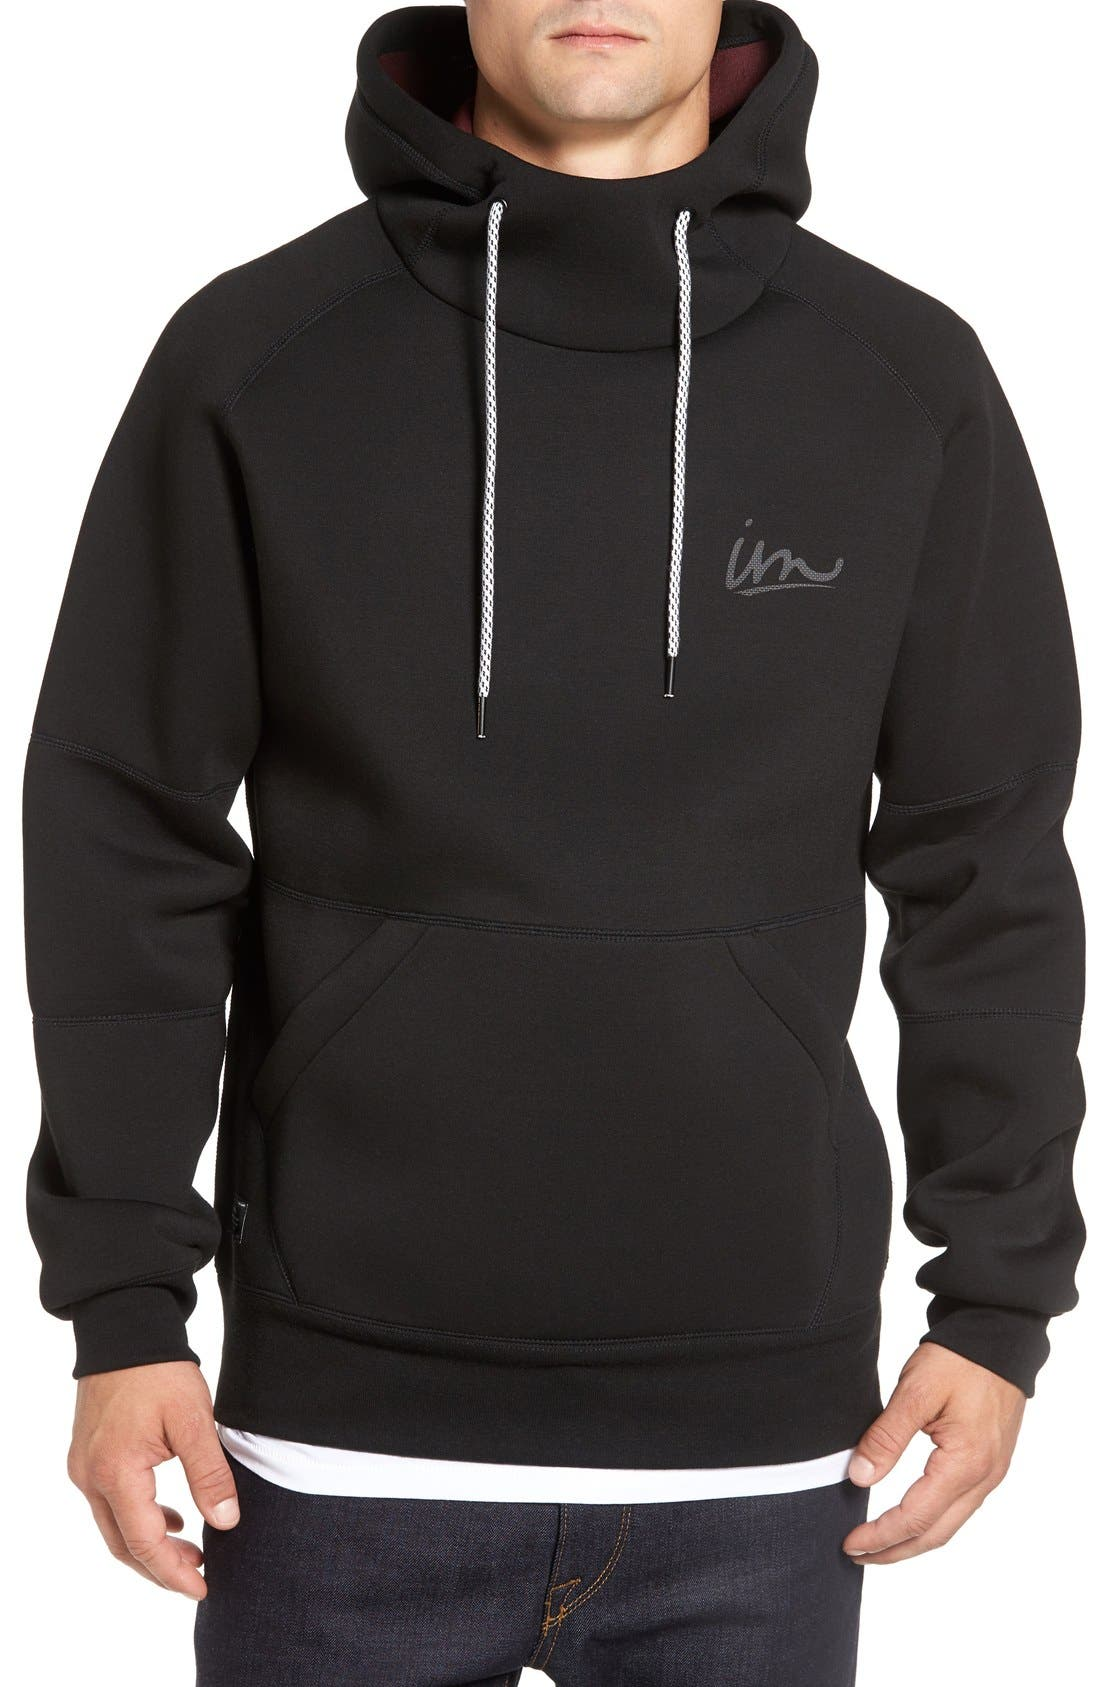 Imperial Motion 'Filament' Bonded Fleece Hoodie